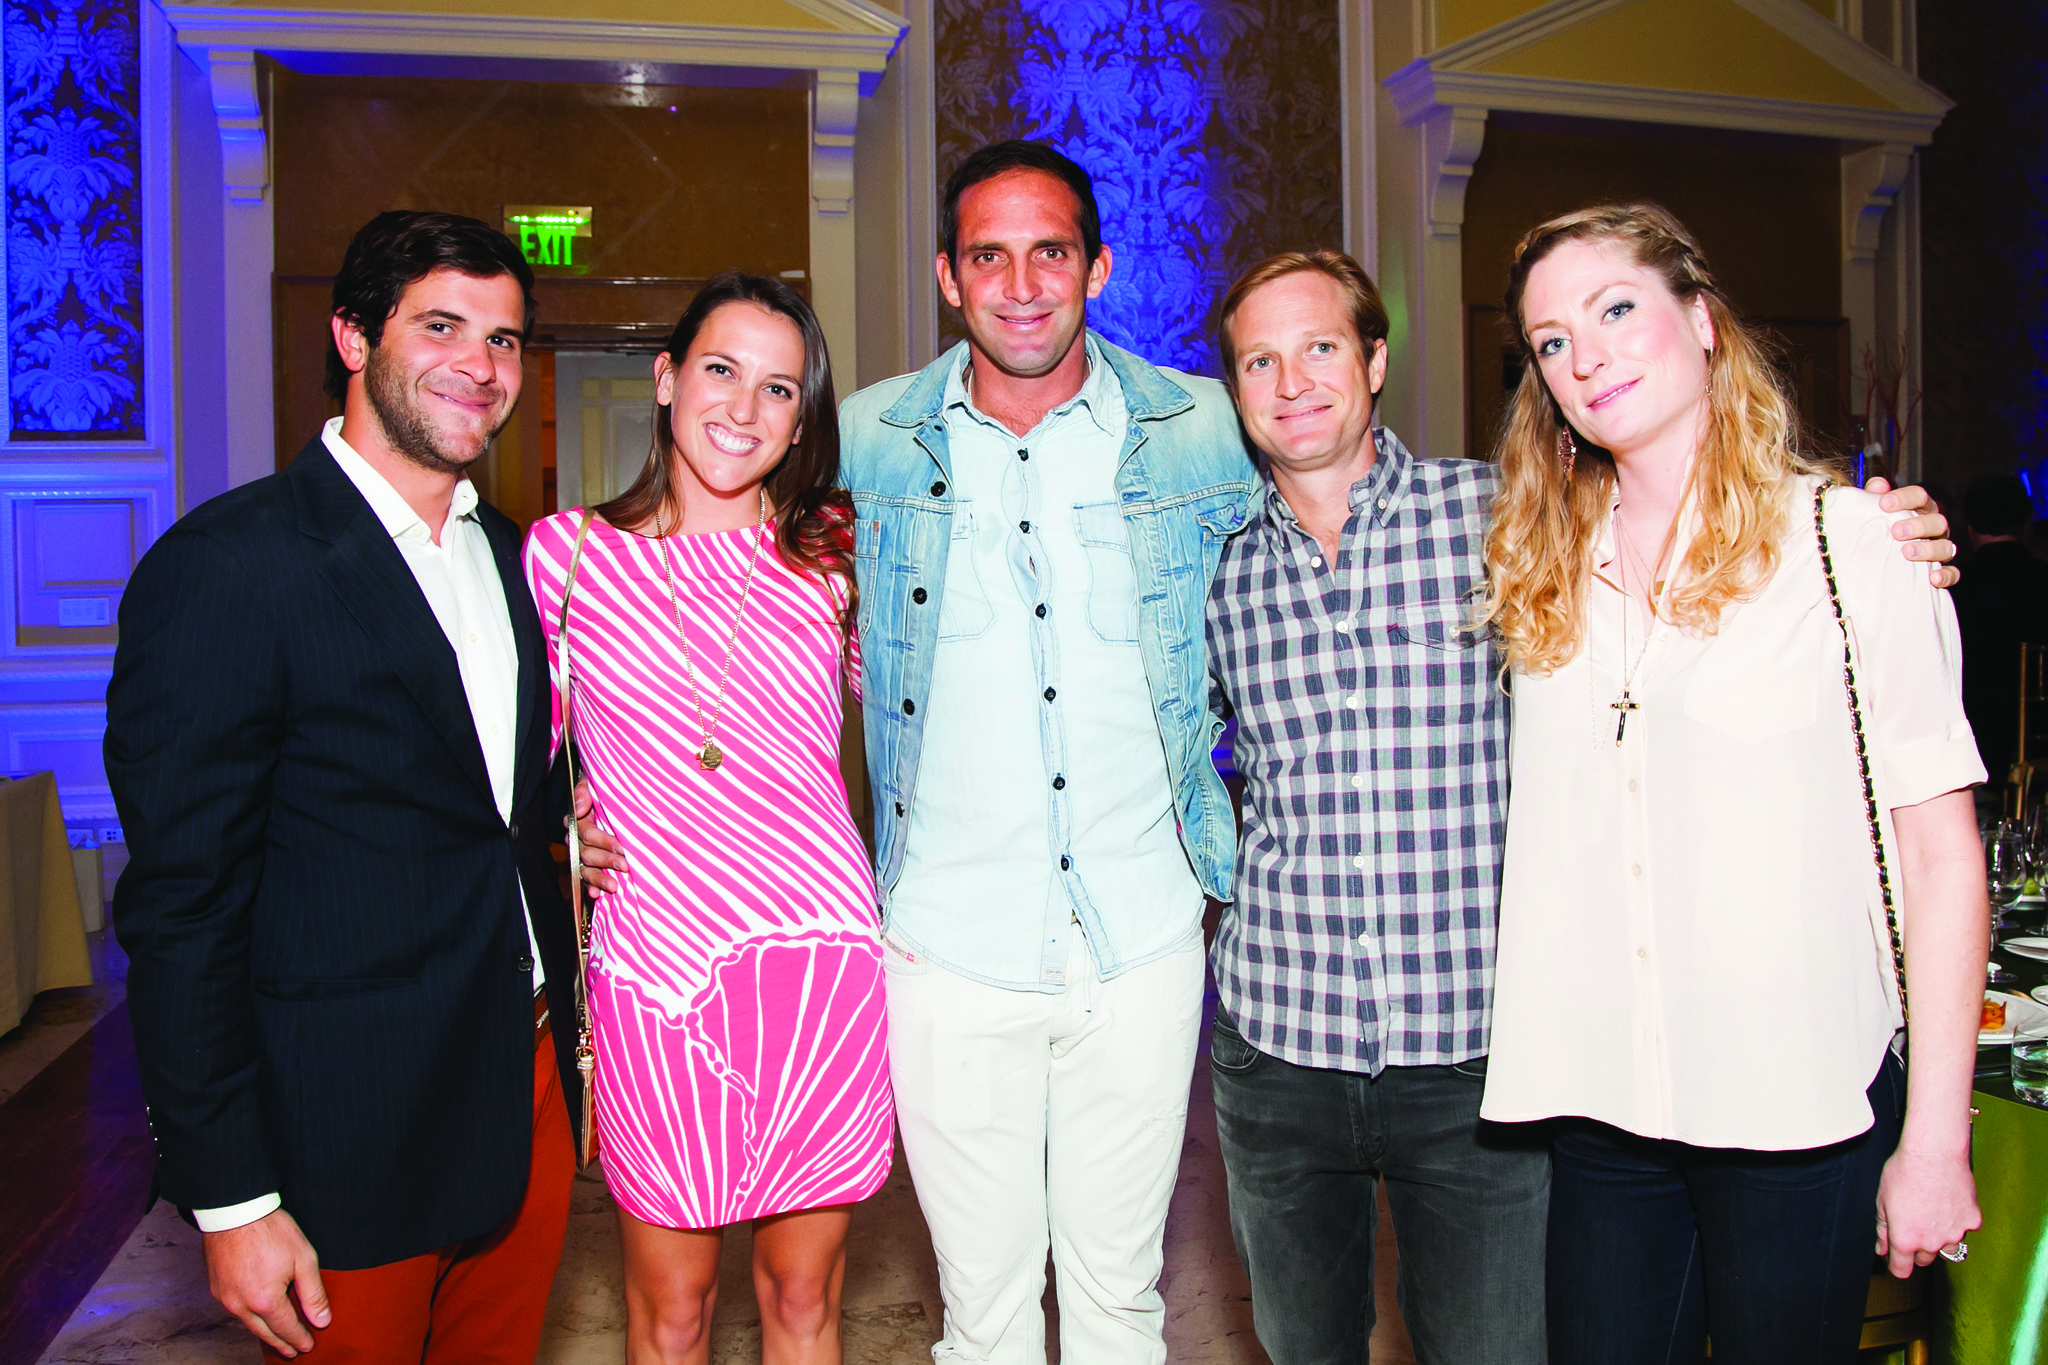 """Society Scene photos - Sean Ferrara, left, Lilly Leas, Chris Leidy, Kendall Cheatham and Mary Brittain Cheatham looked stylish in their """"Palm Beach Chic"""" for the recent Caron and Hanley Treatment Centers"""